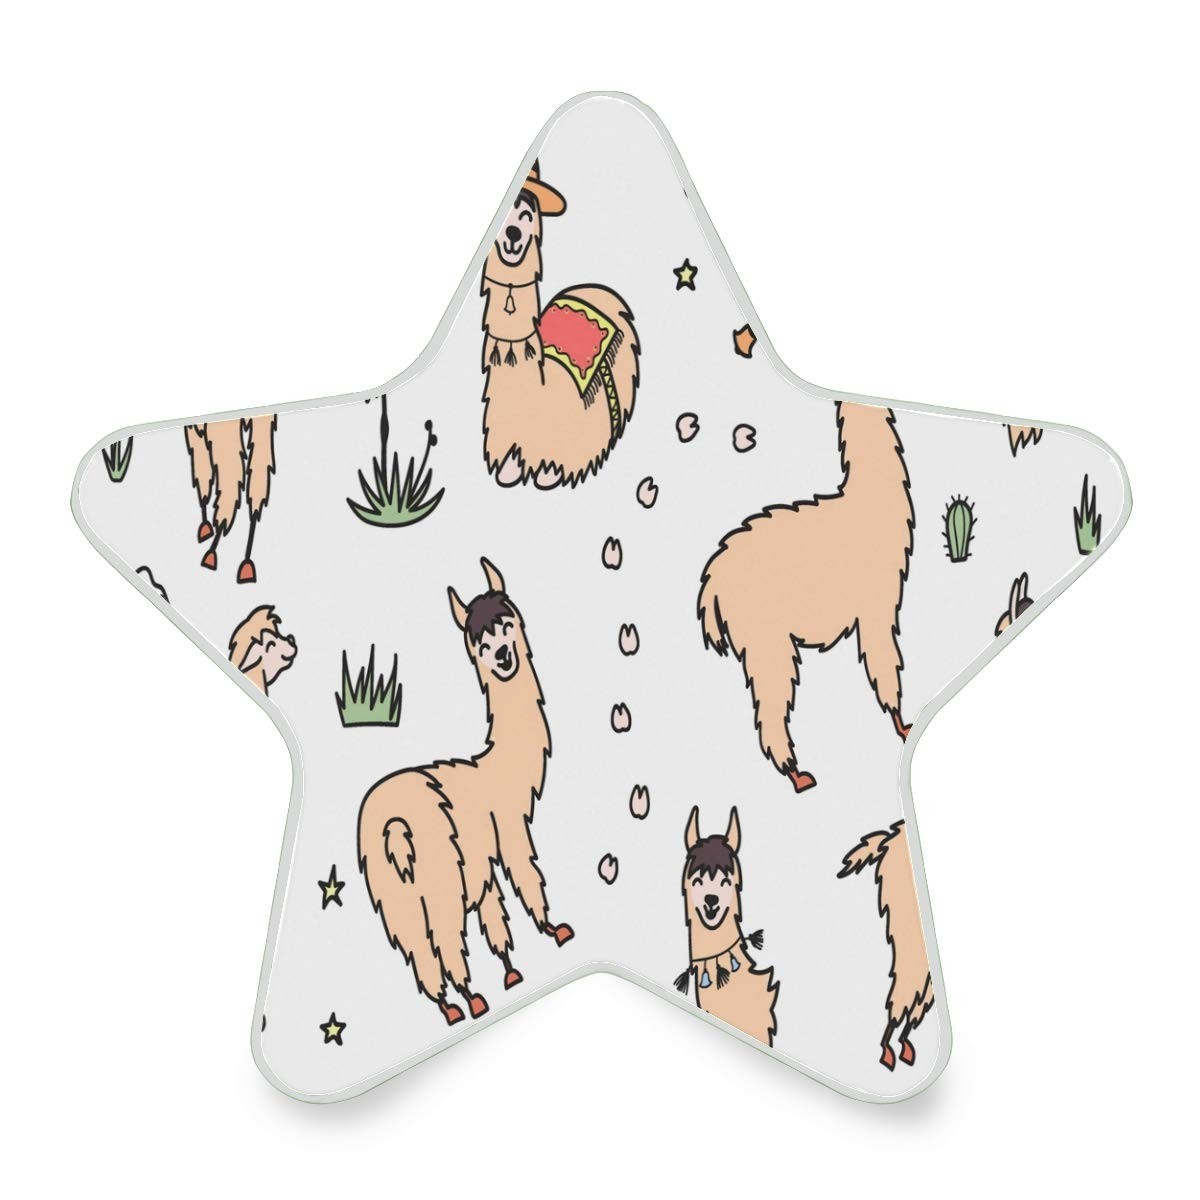 LED Night Light Illustration of South America Cute Lama with Decorations Nightlight Decorative Star Pentagram Shaped Plug in for Kids Baby Girls Boys Adults Room